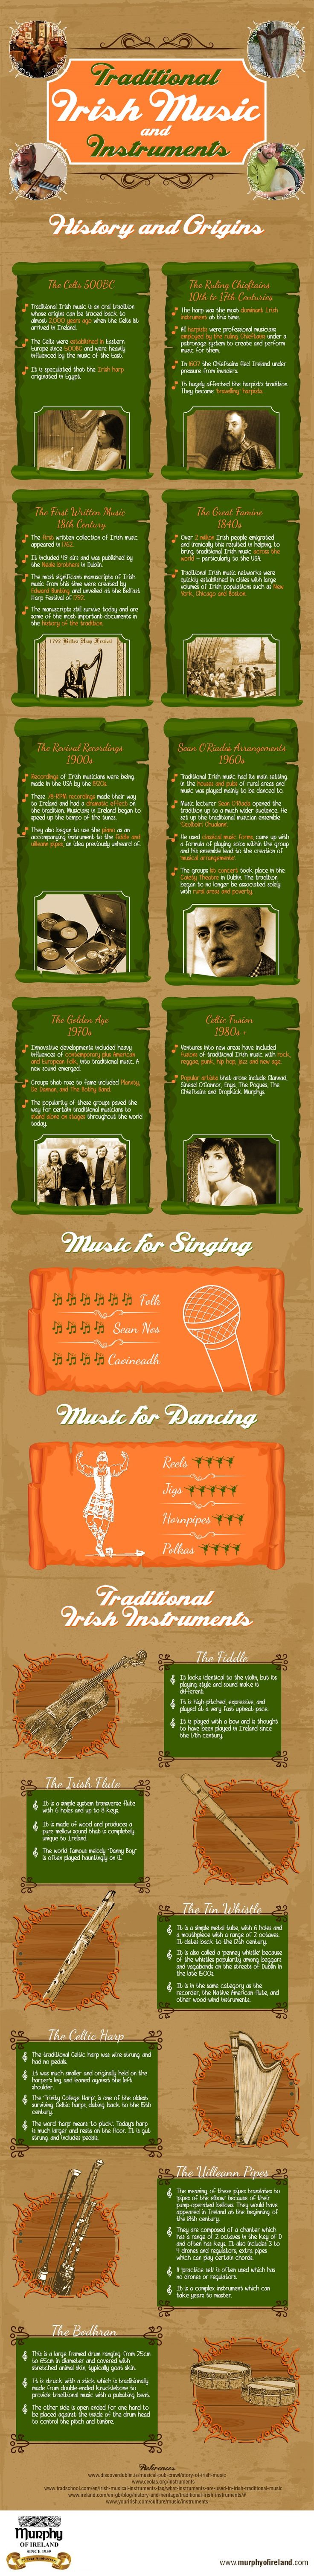 This infographic covers the origins of traditional Irish music and the history behind it from the Celts to present day. It also cover the types of music for singing and dancing in addition to providing details on the main traditional Irish instruments – the Fiddle, the Irish Flute, the Tin Whistle, the Celtic Harp, The Uilleann Pipes and the Bodhran.